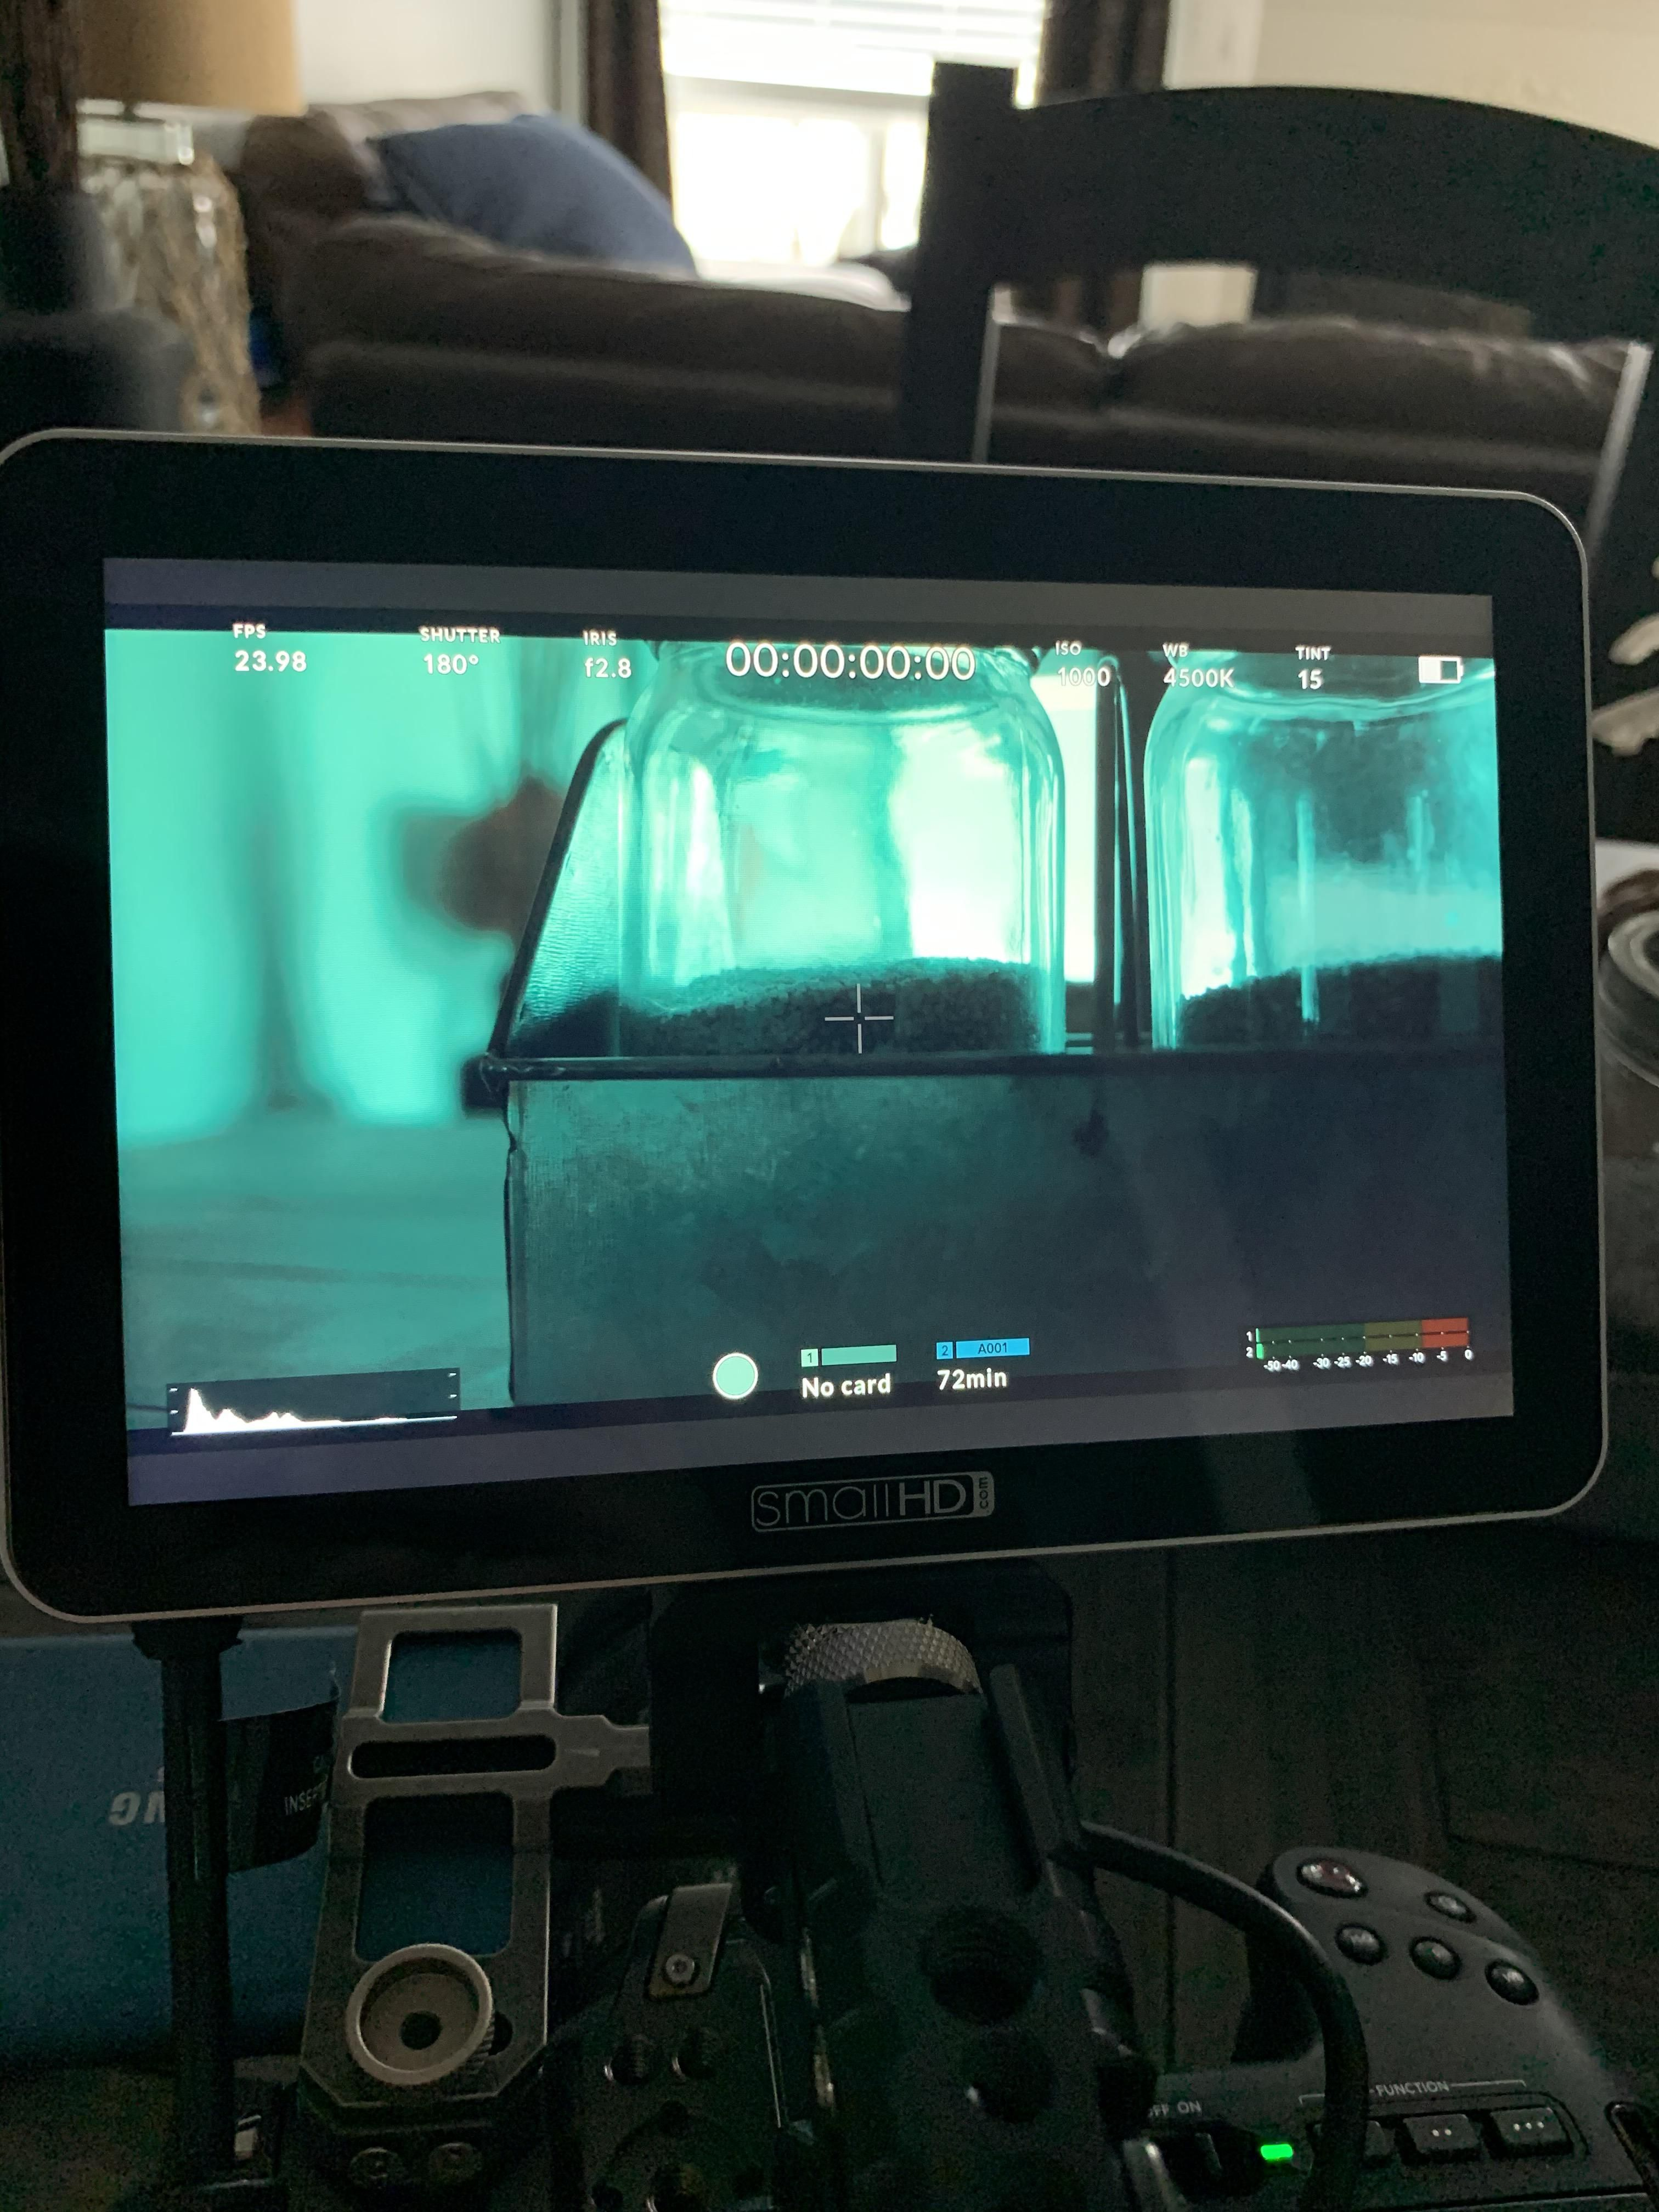 Can anybody with a smallhd focus 7 and bmpcc4k please tell me how to get rid of the grey bars to make the screen full? #Videography